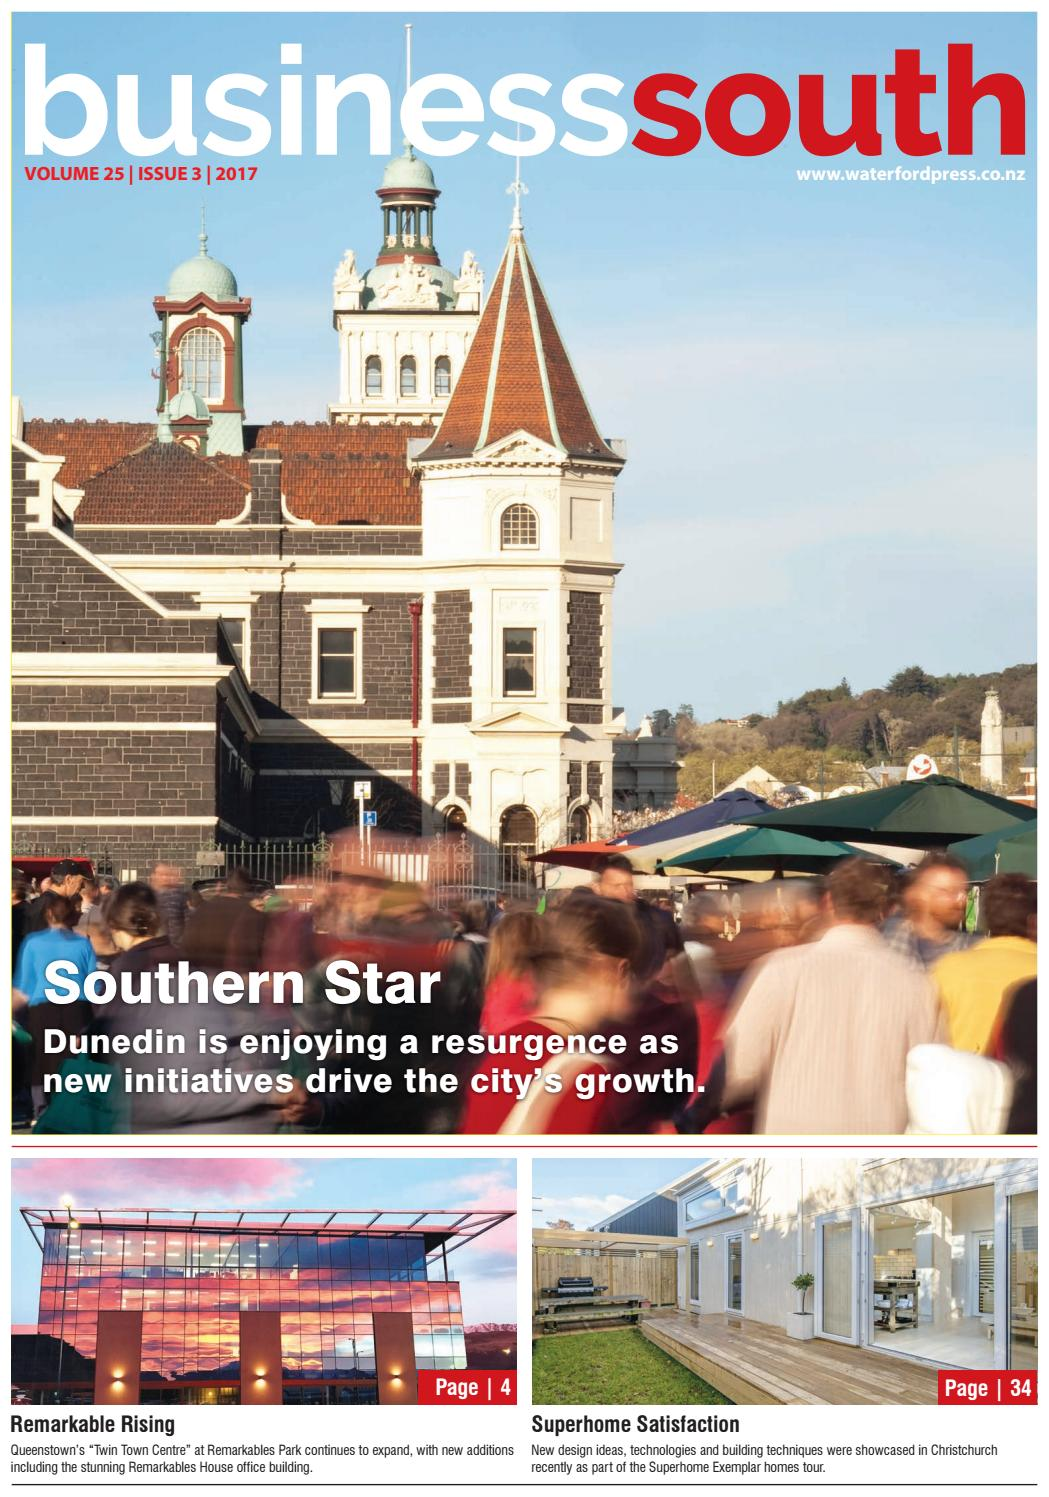 Business South Volume 25 | Isuue 3 by Waterford Press